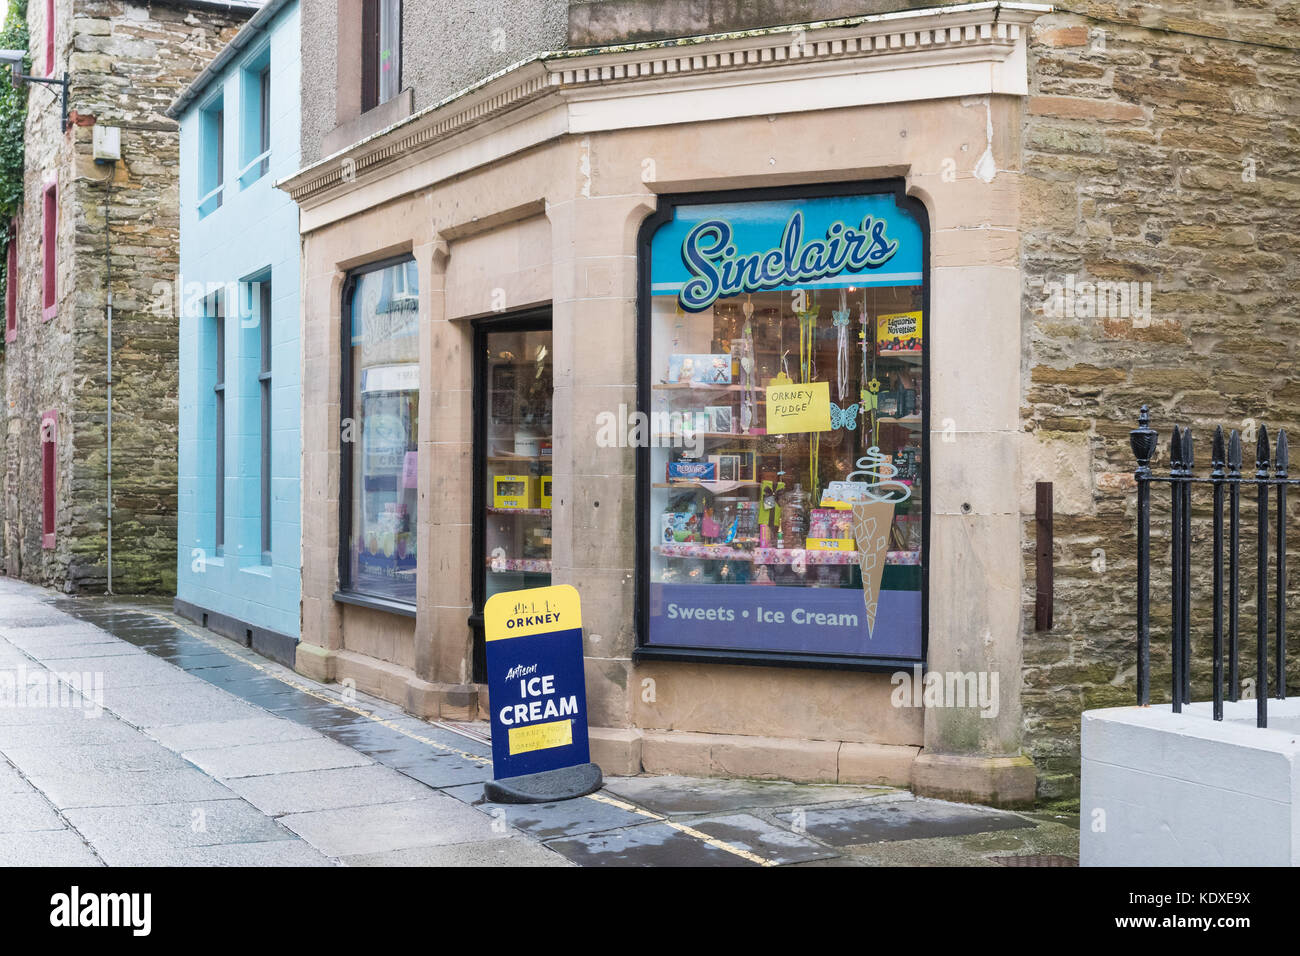 Sinclairs ice cream and sweet shop, Albert Street, Kirkwall, Orkney, Scotland, UK - Stock Image